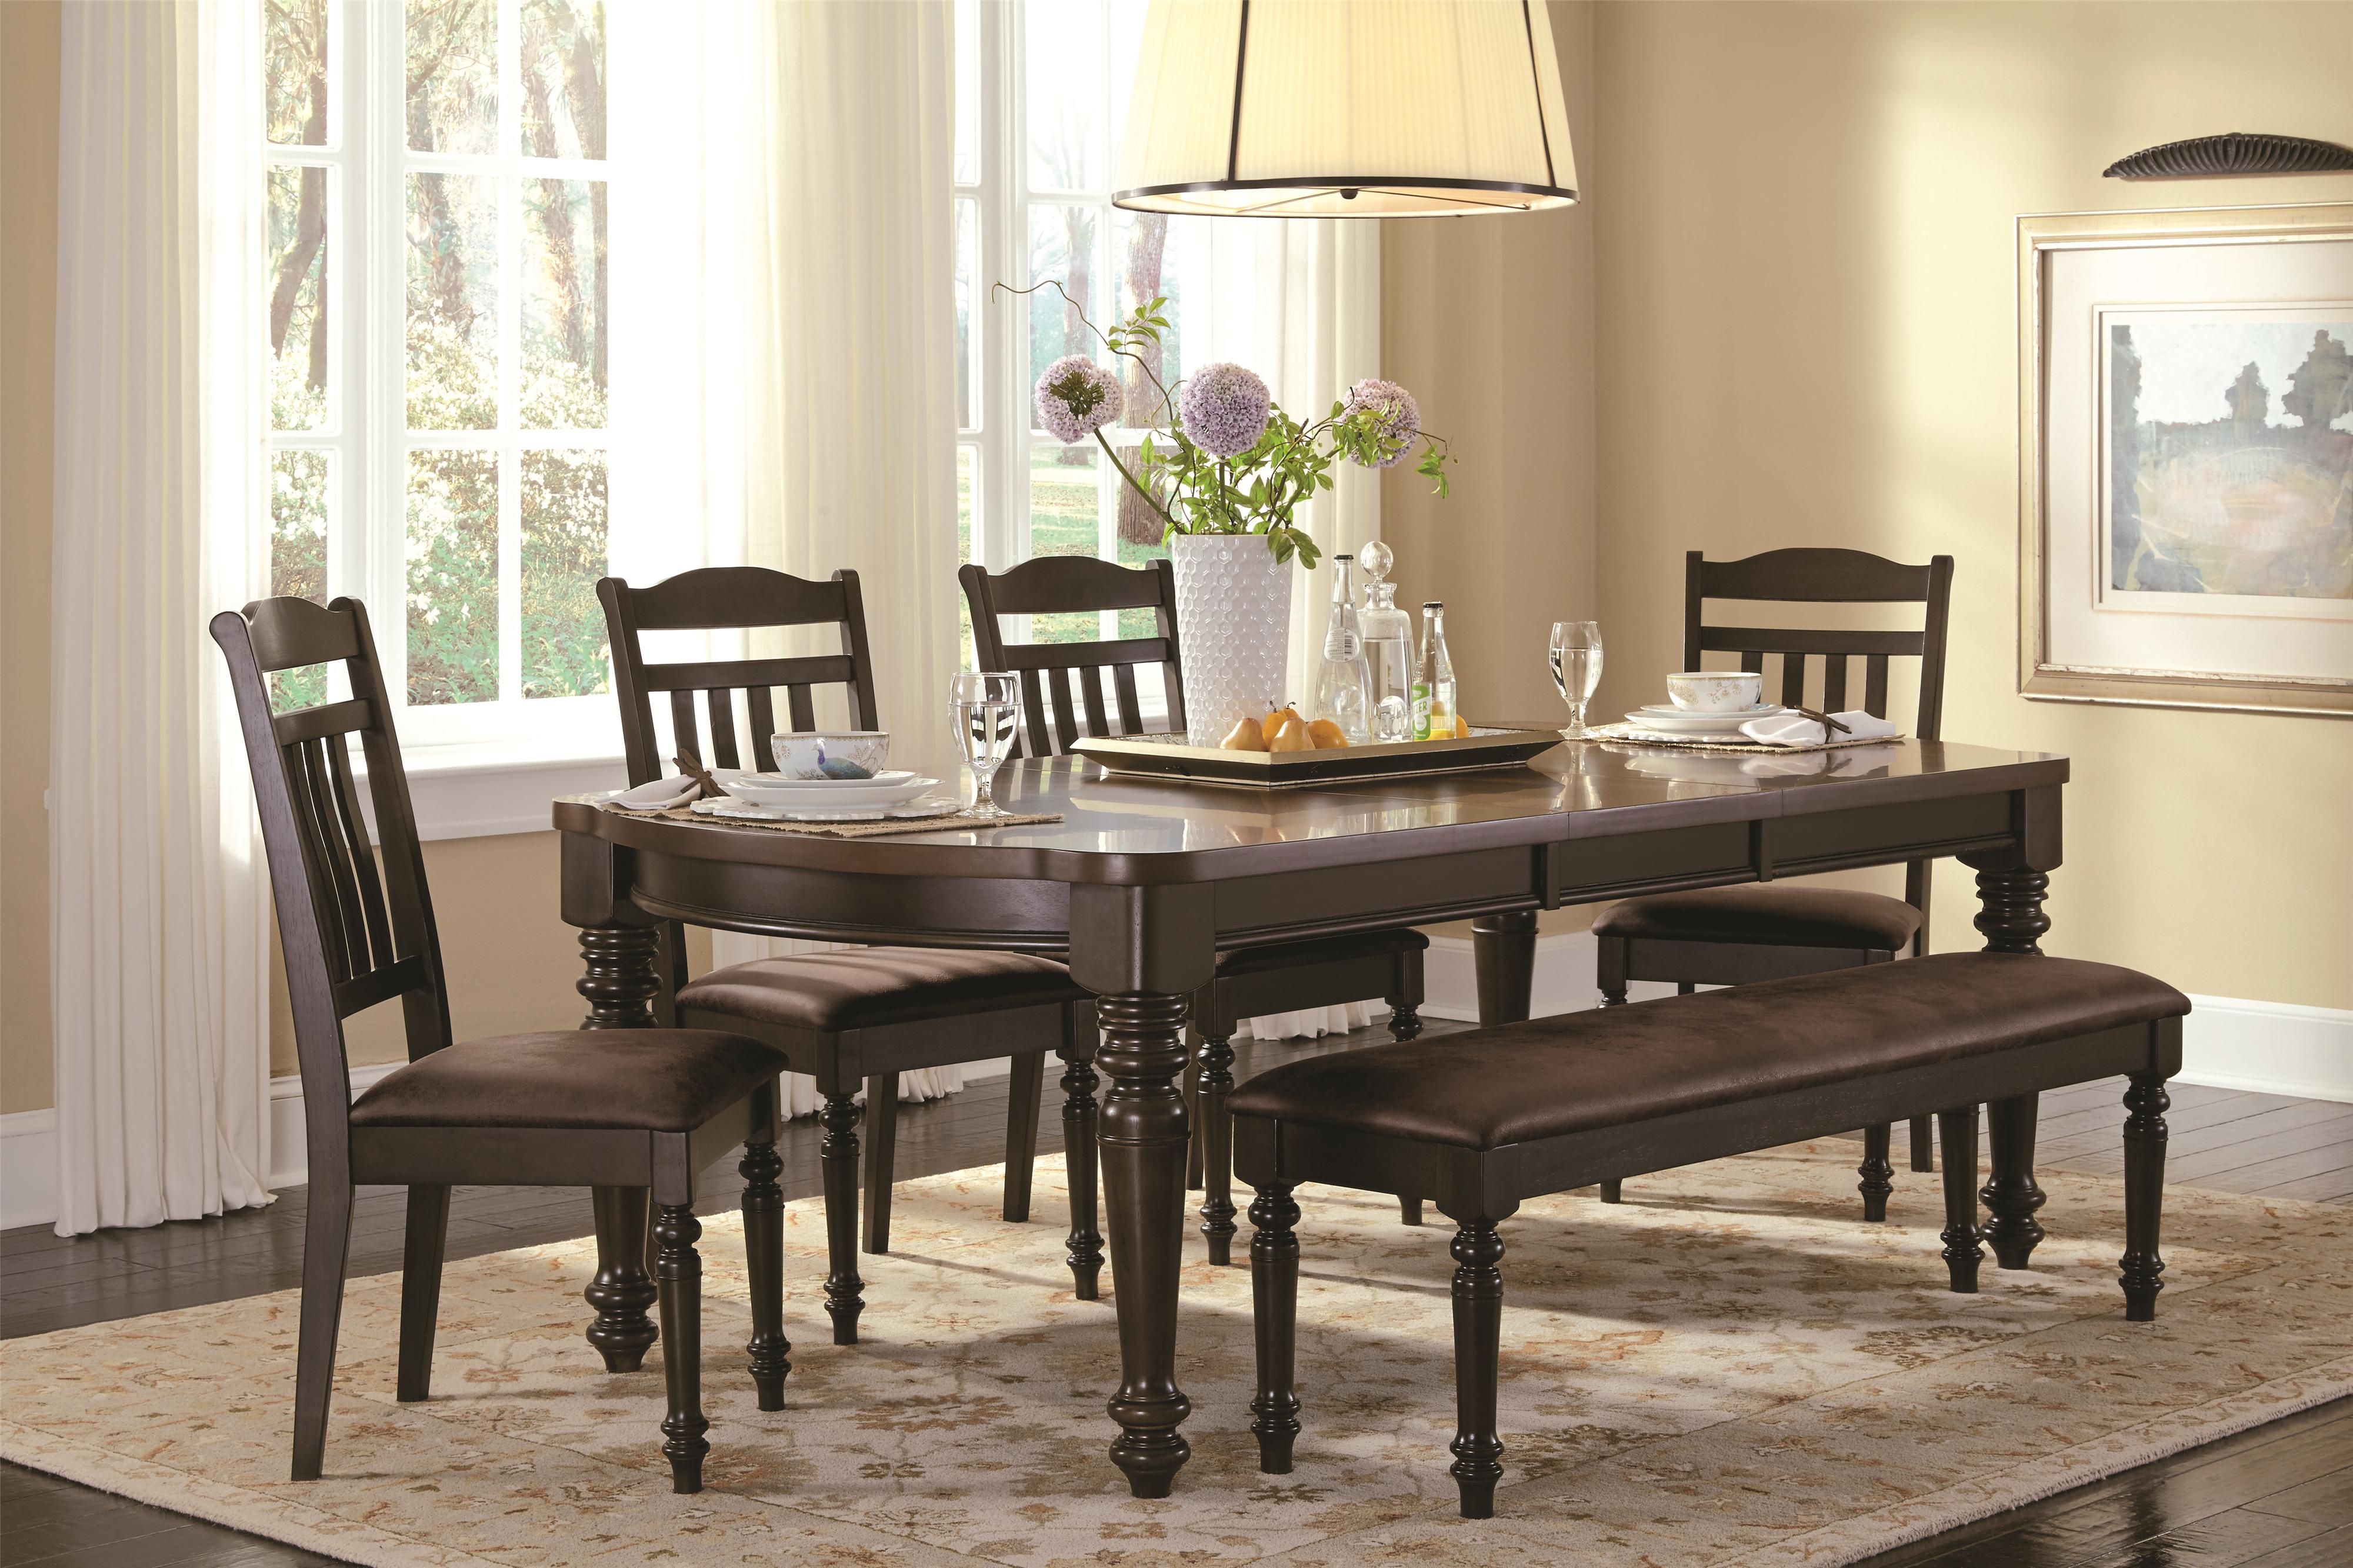 Mulligan Country Style Table And Chair Set With Bench